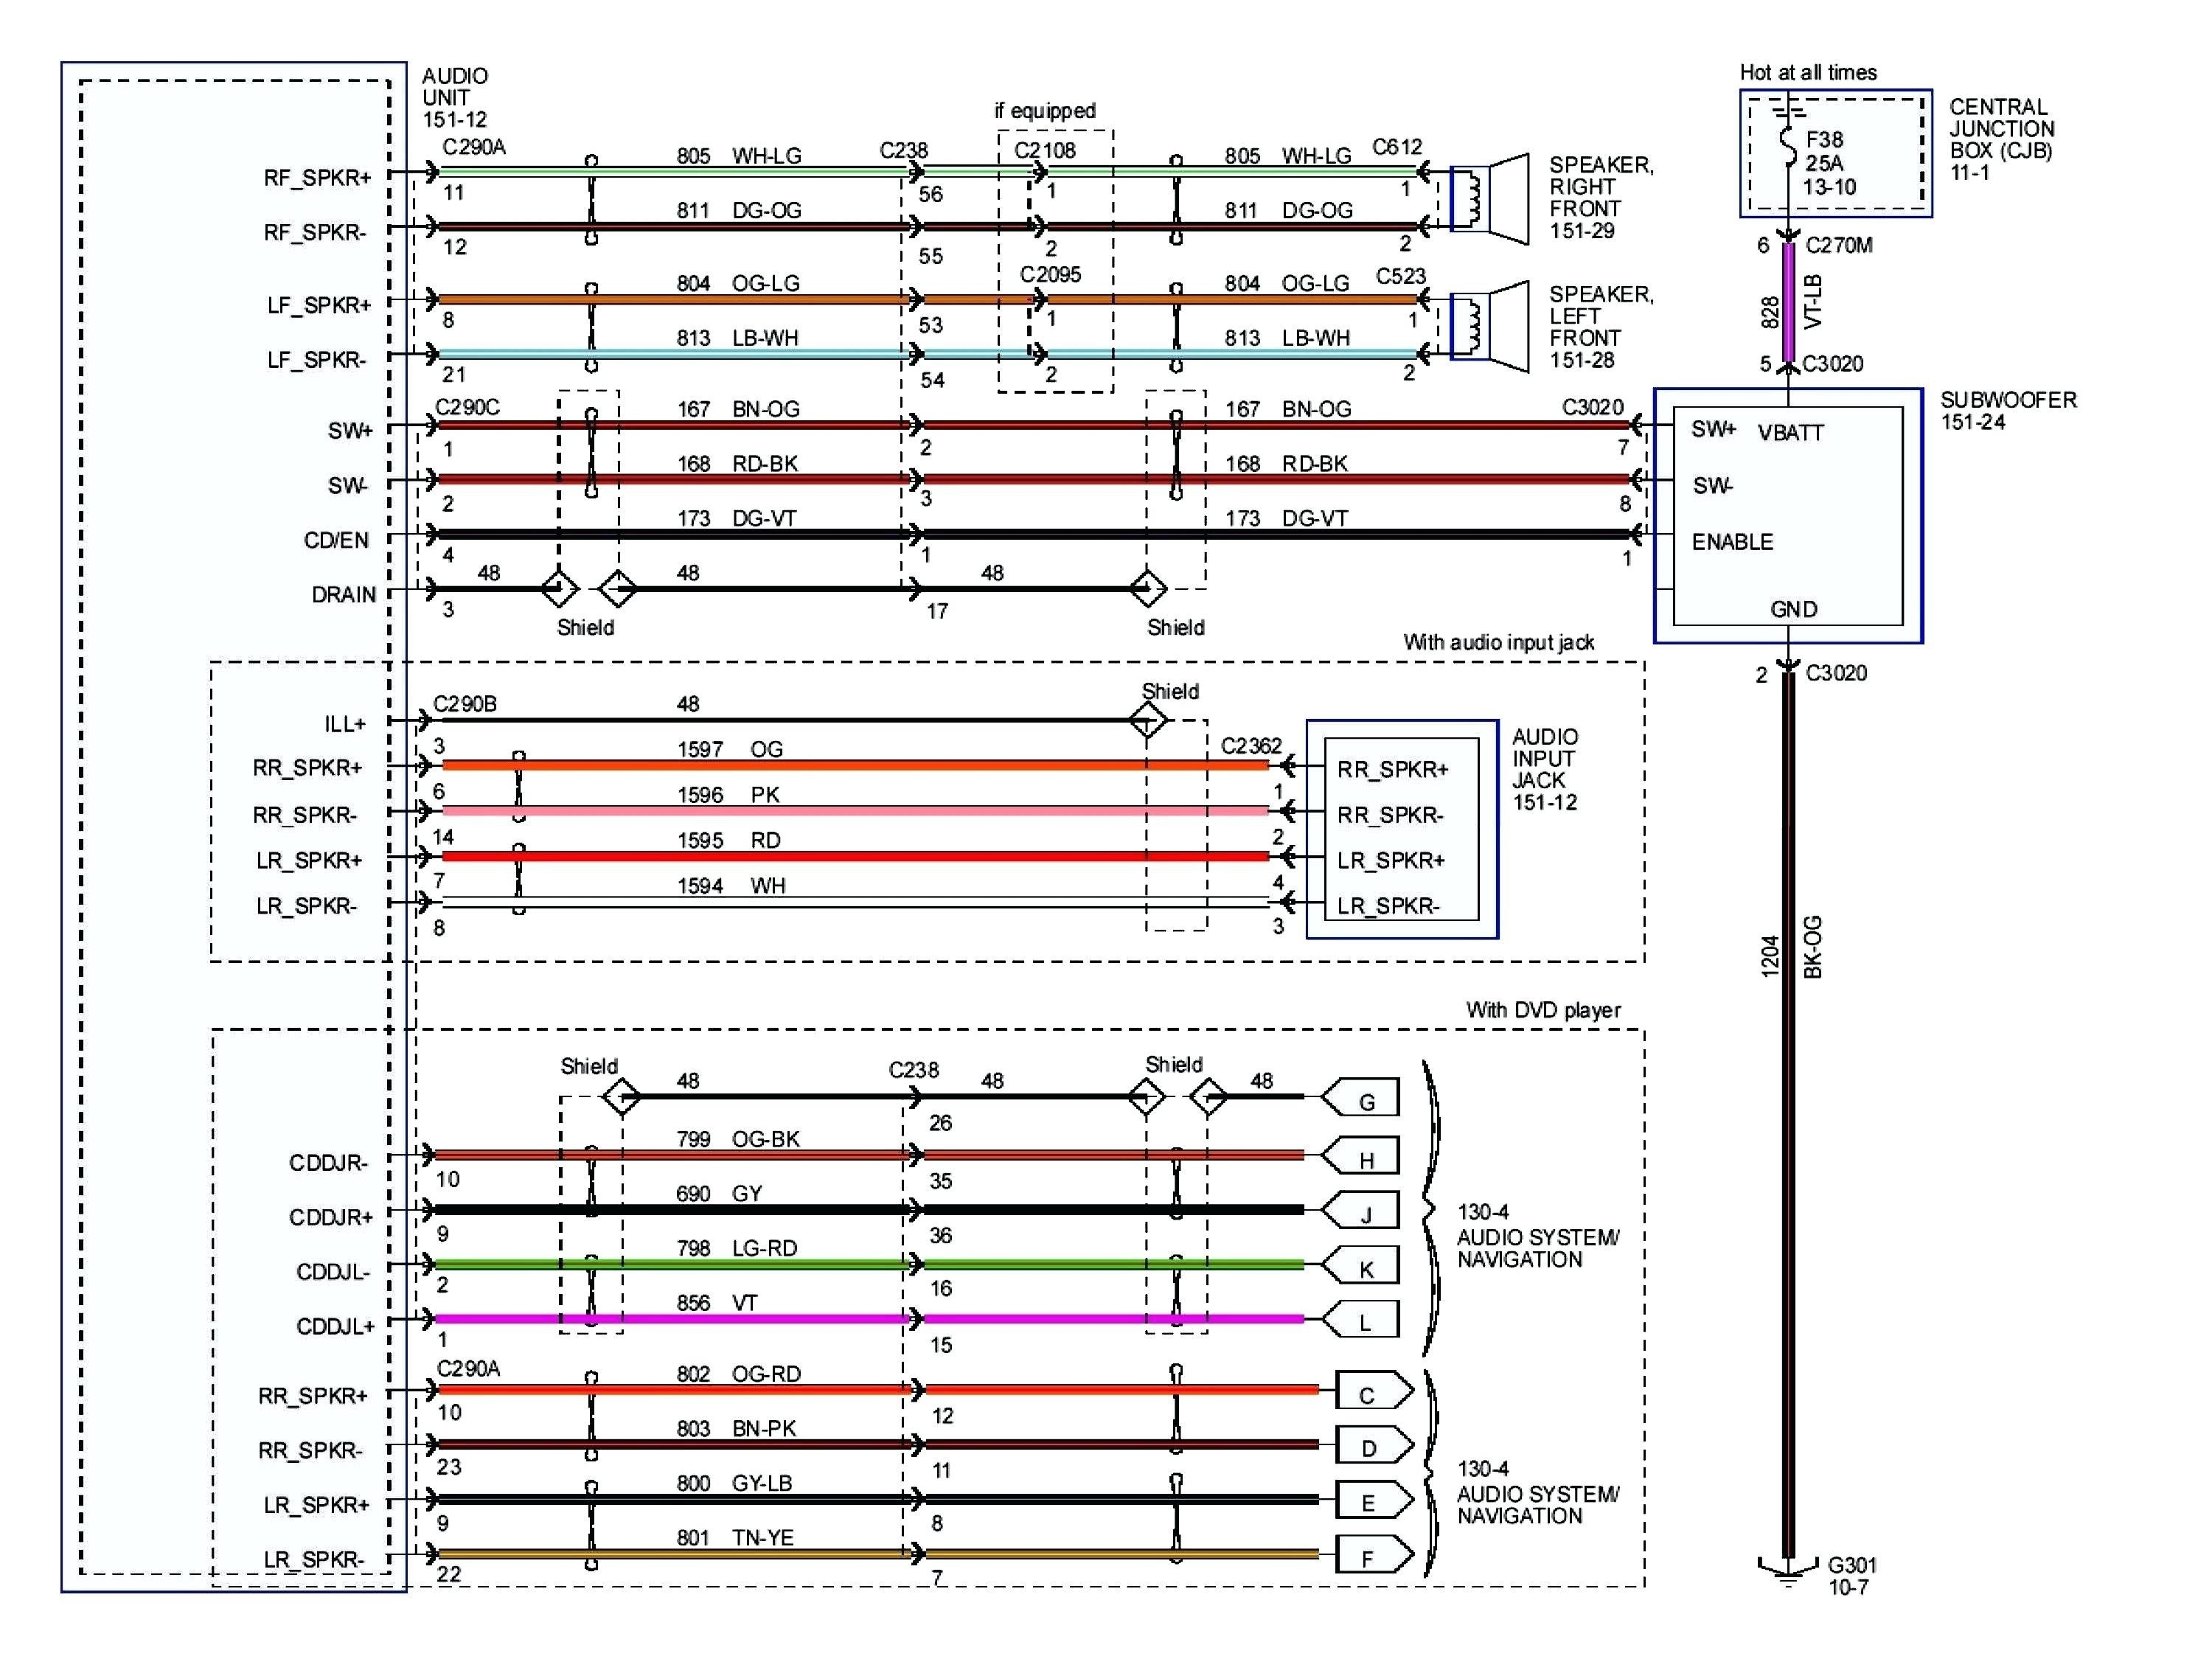 2004 ford f250 radio wiring diagram - 2004 ford f250 wiring diagram online  fresh ford 4r100